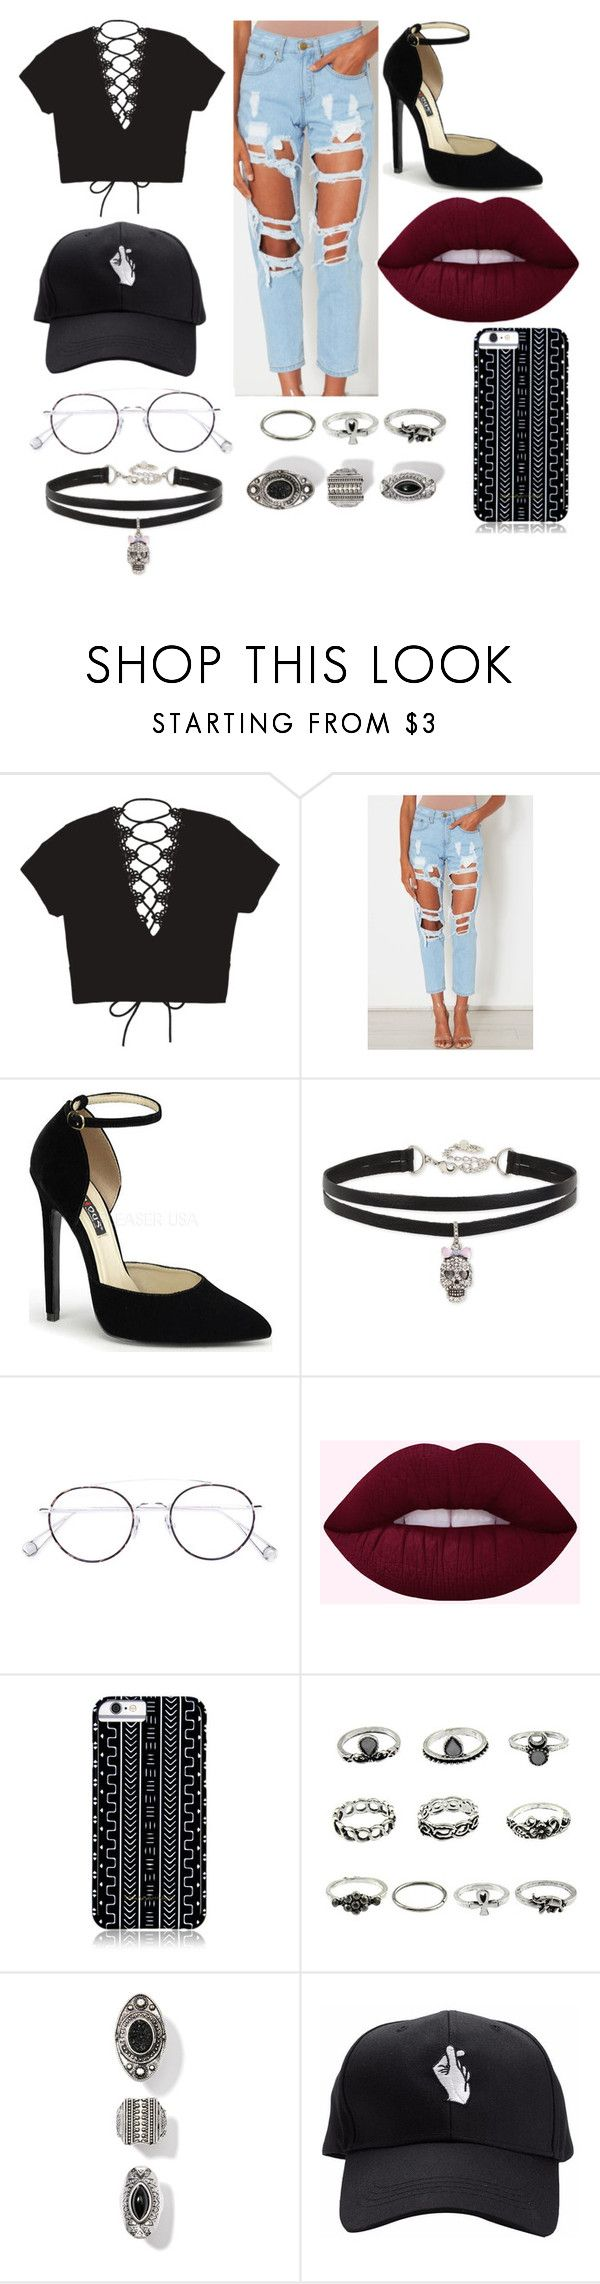 """""""Untitled #236"""" by margarida14 ❤ liked on Polyvore featuring Devious, Betsey Johnson, Ahlem and Savannah Hayes"""